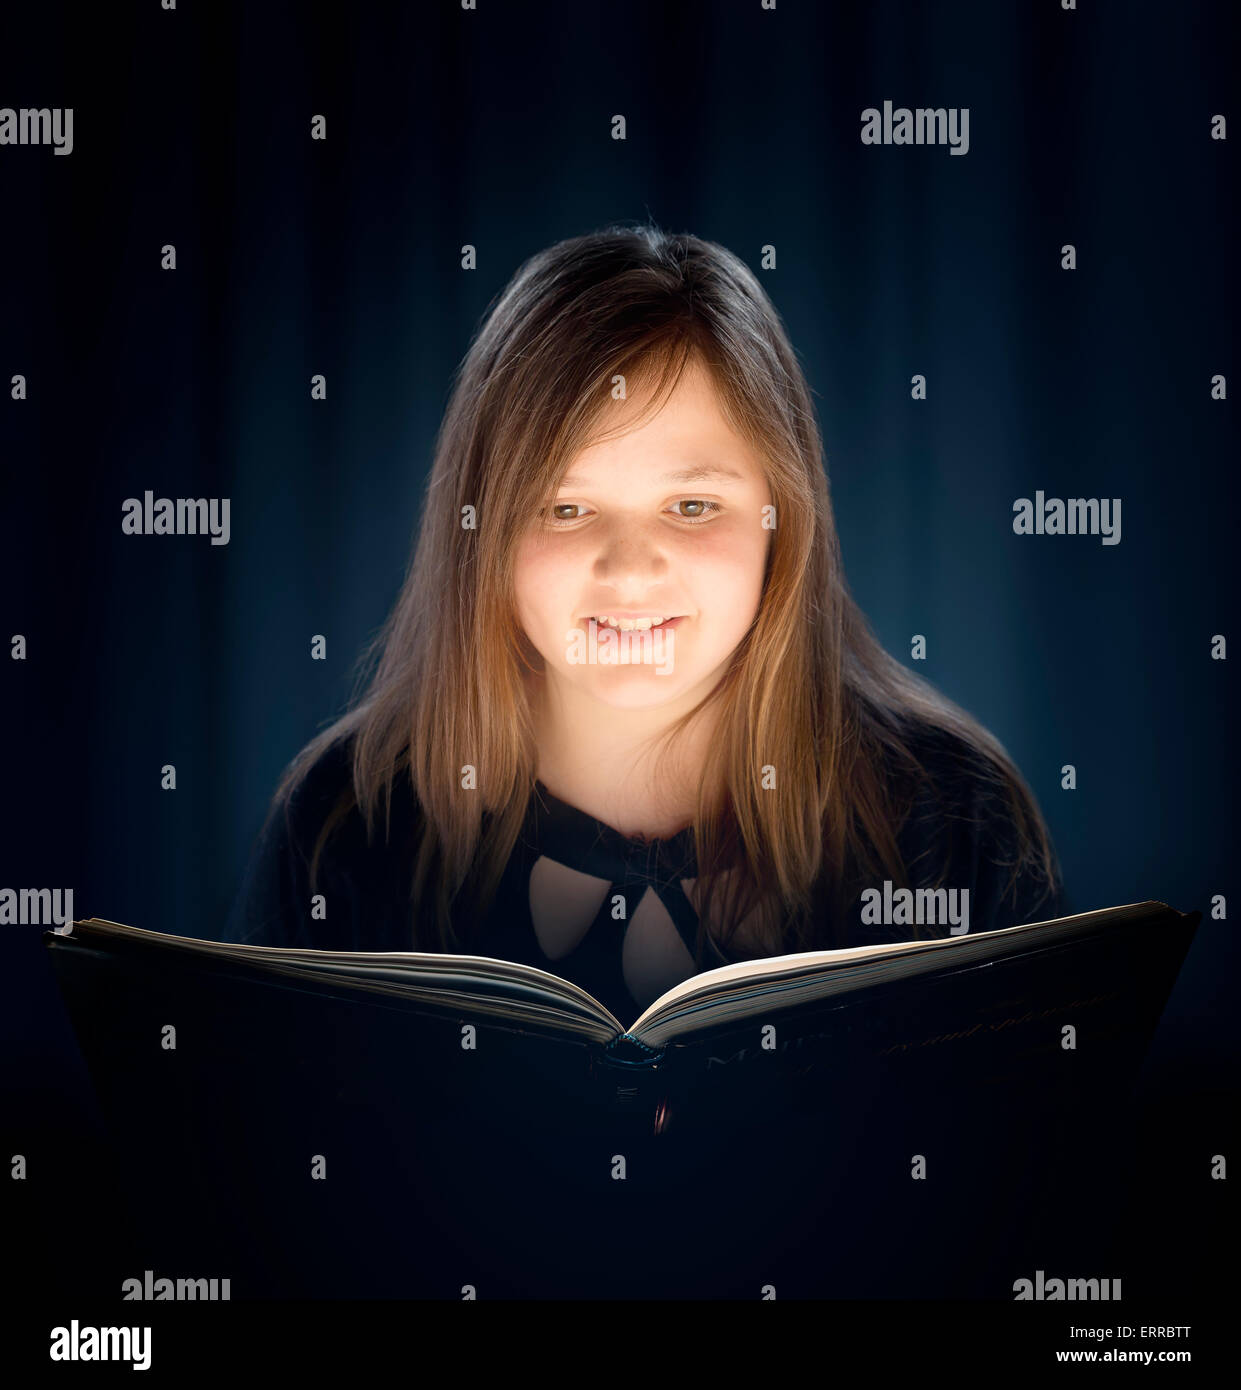 Young girl with long hair reading a book with glowing light - Stock Image